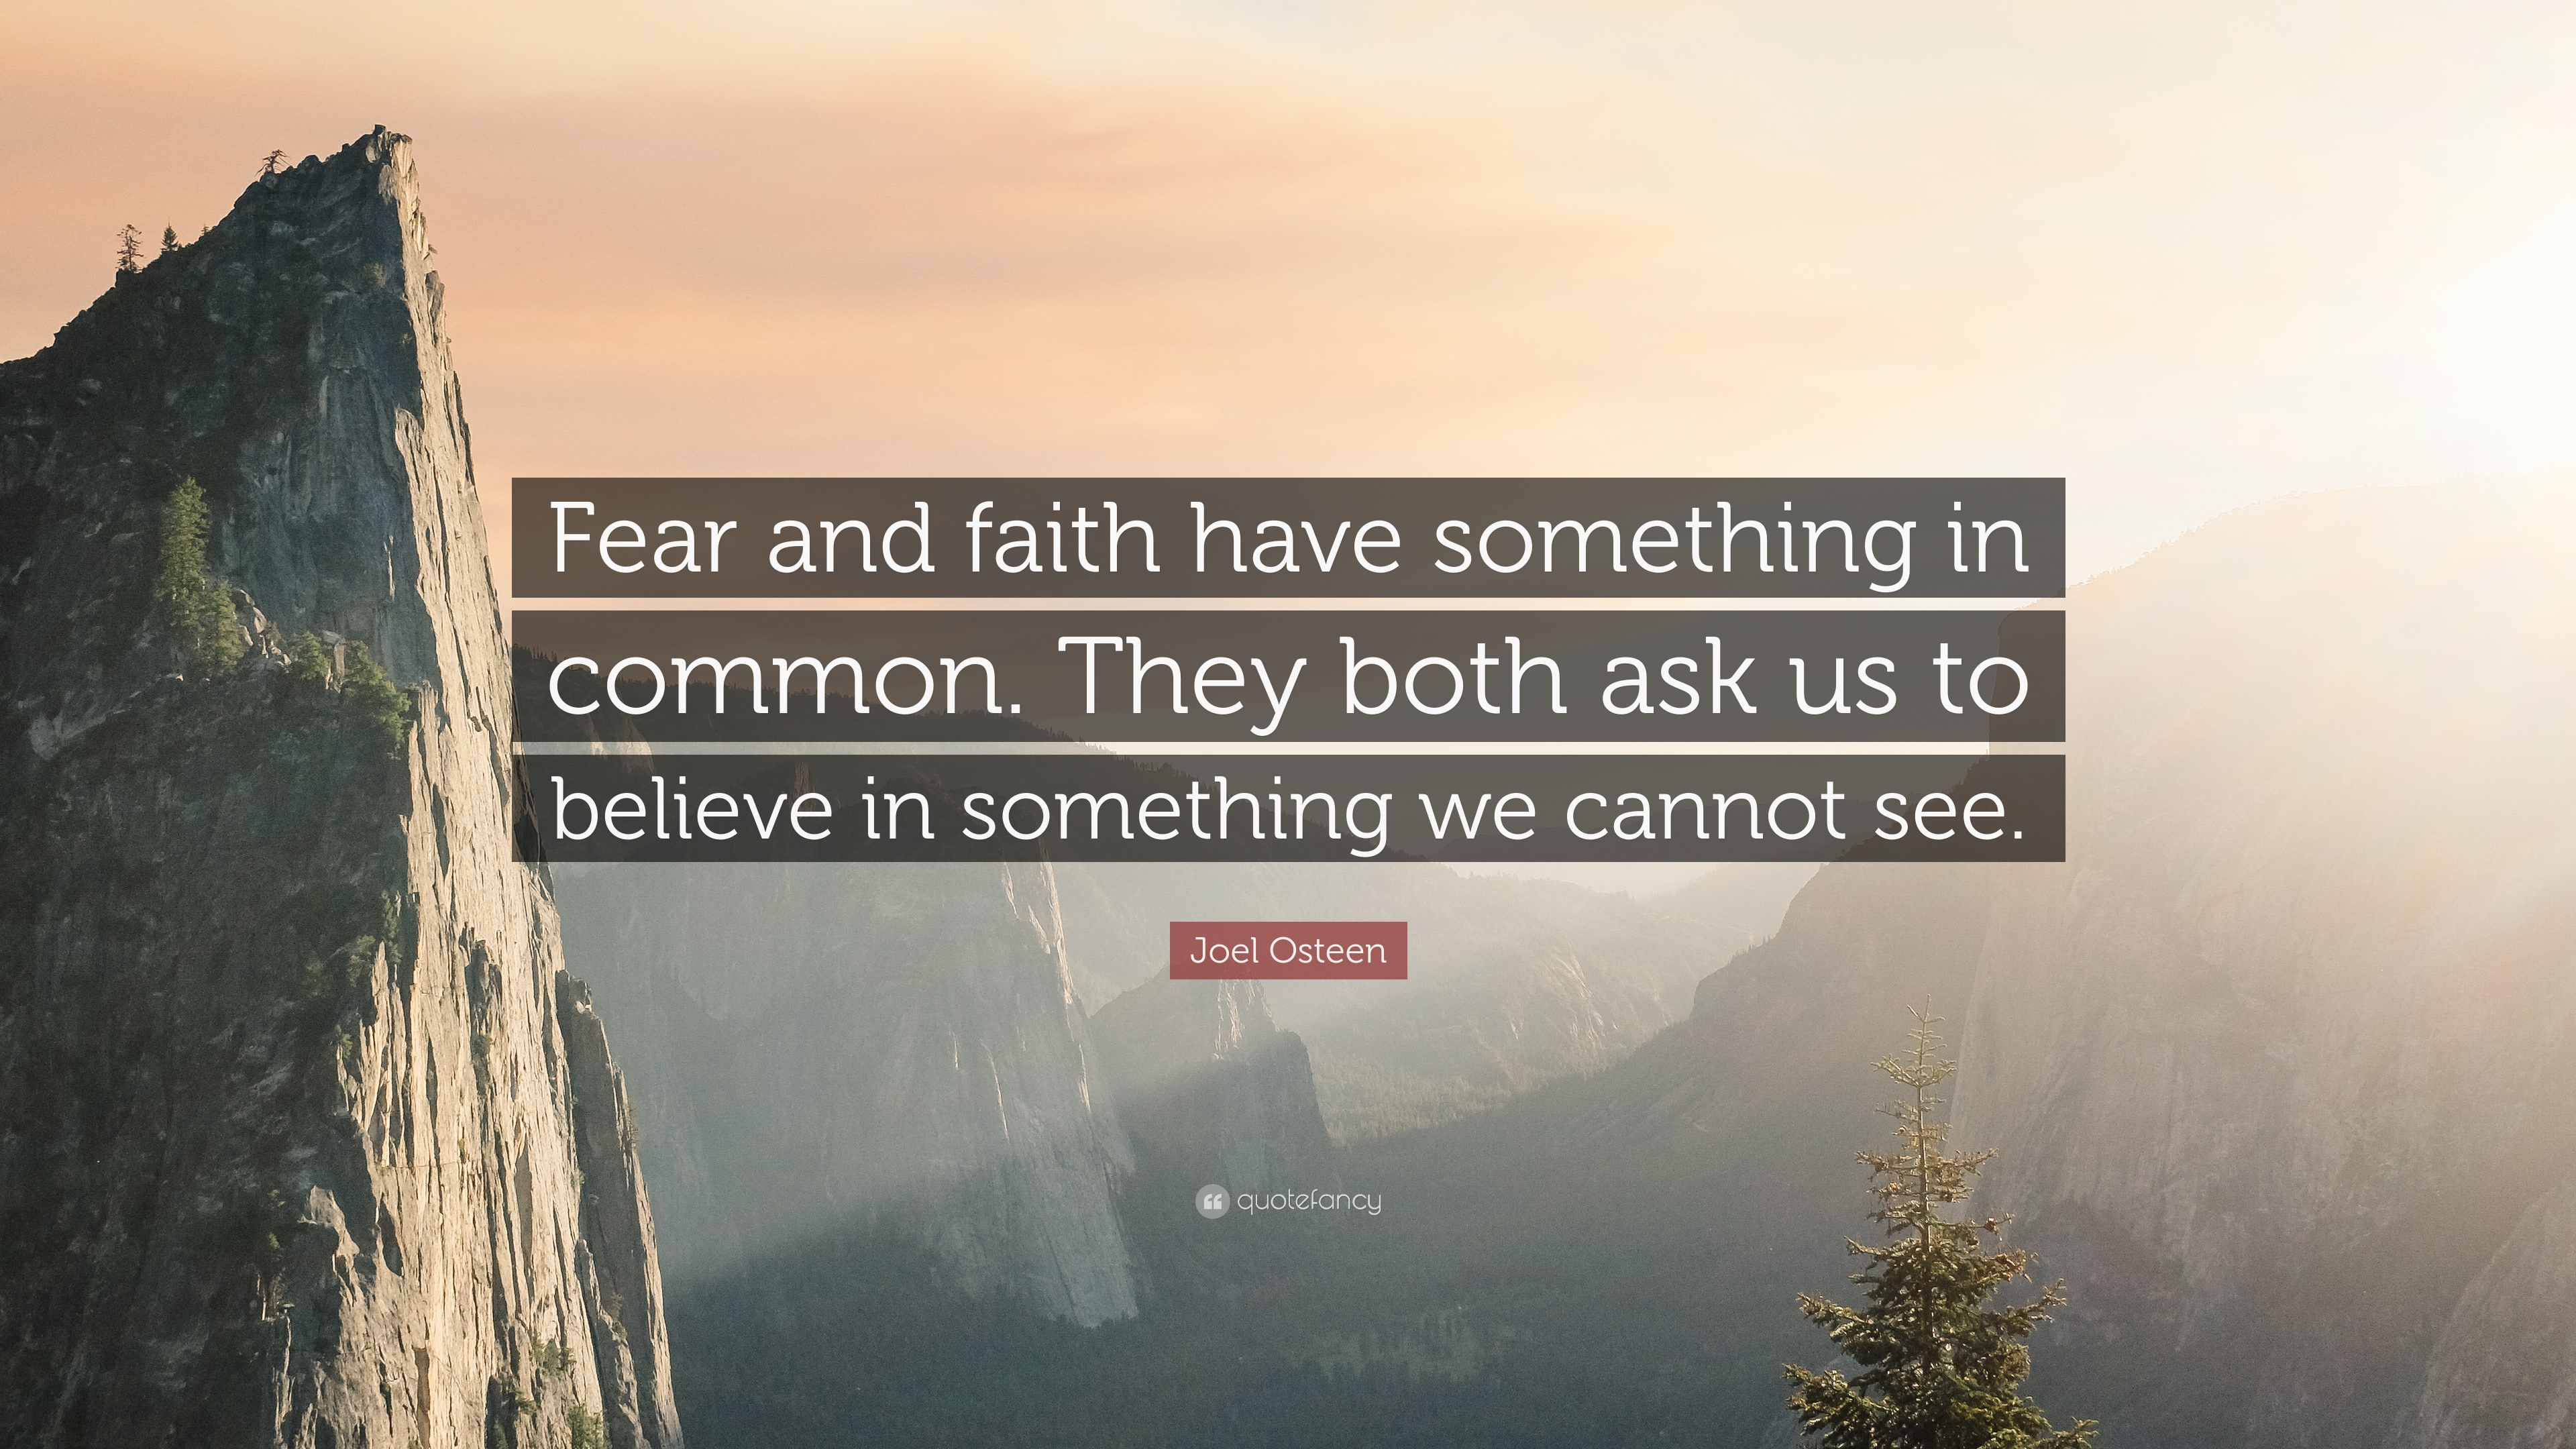 Joel Osteen Quote: U201cFear And Faith Have Something In Common. They Both Ask